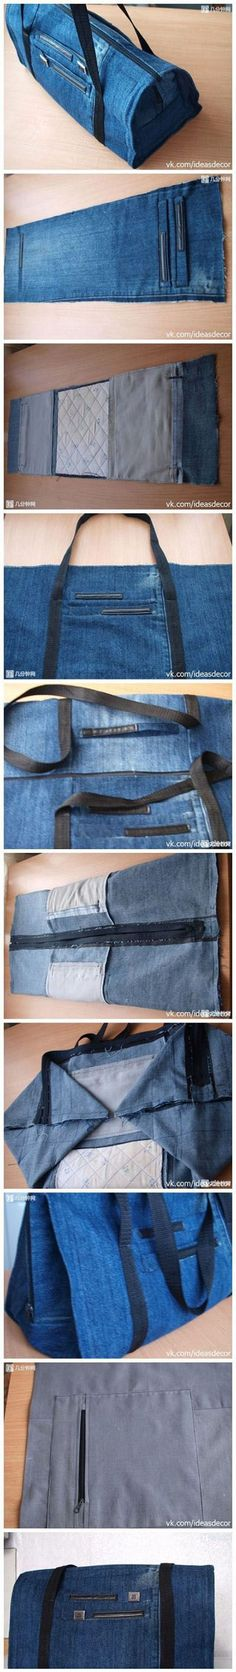 Diy Jean Bag | DIY & Crafts